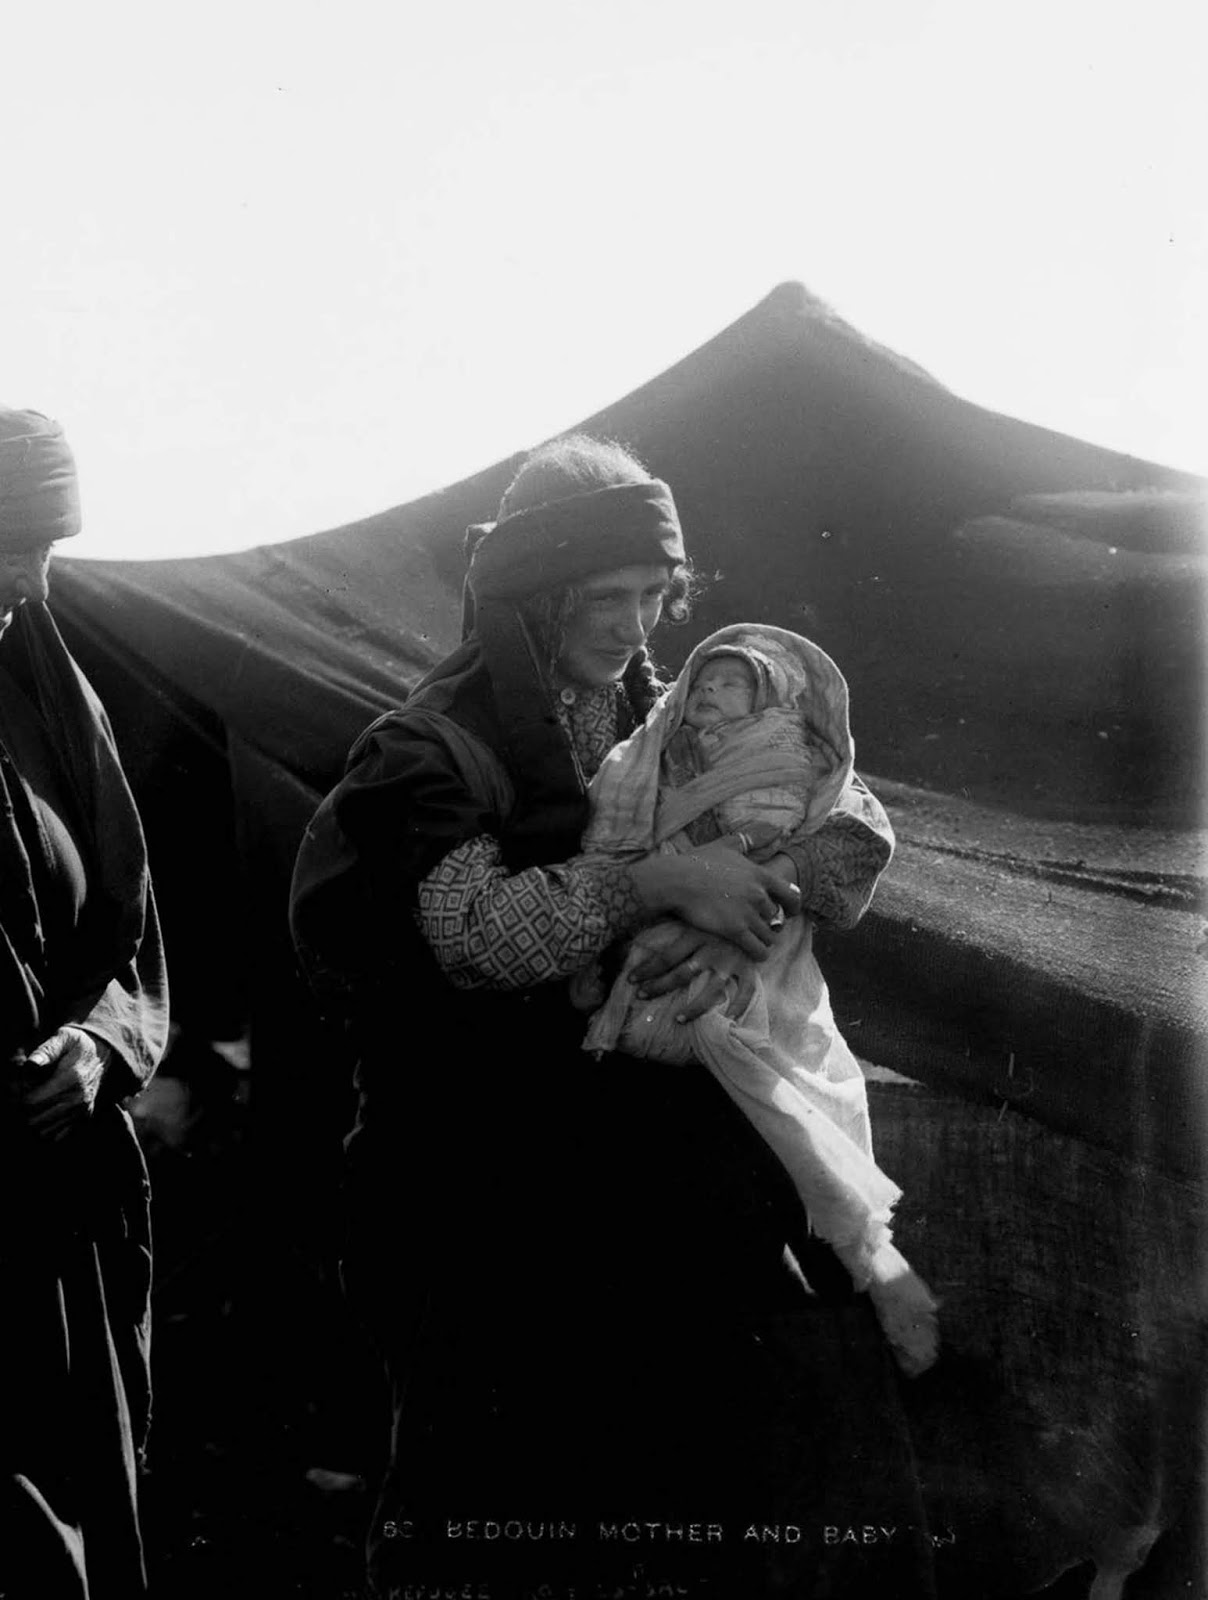 A Bedouin woman and her child.